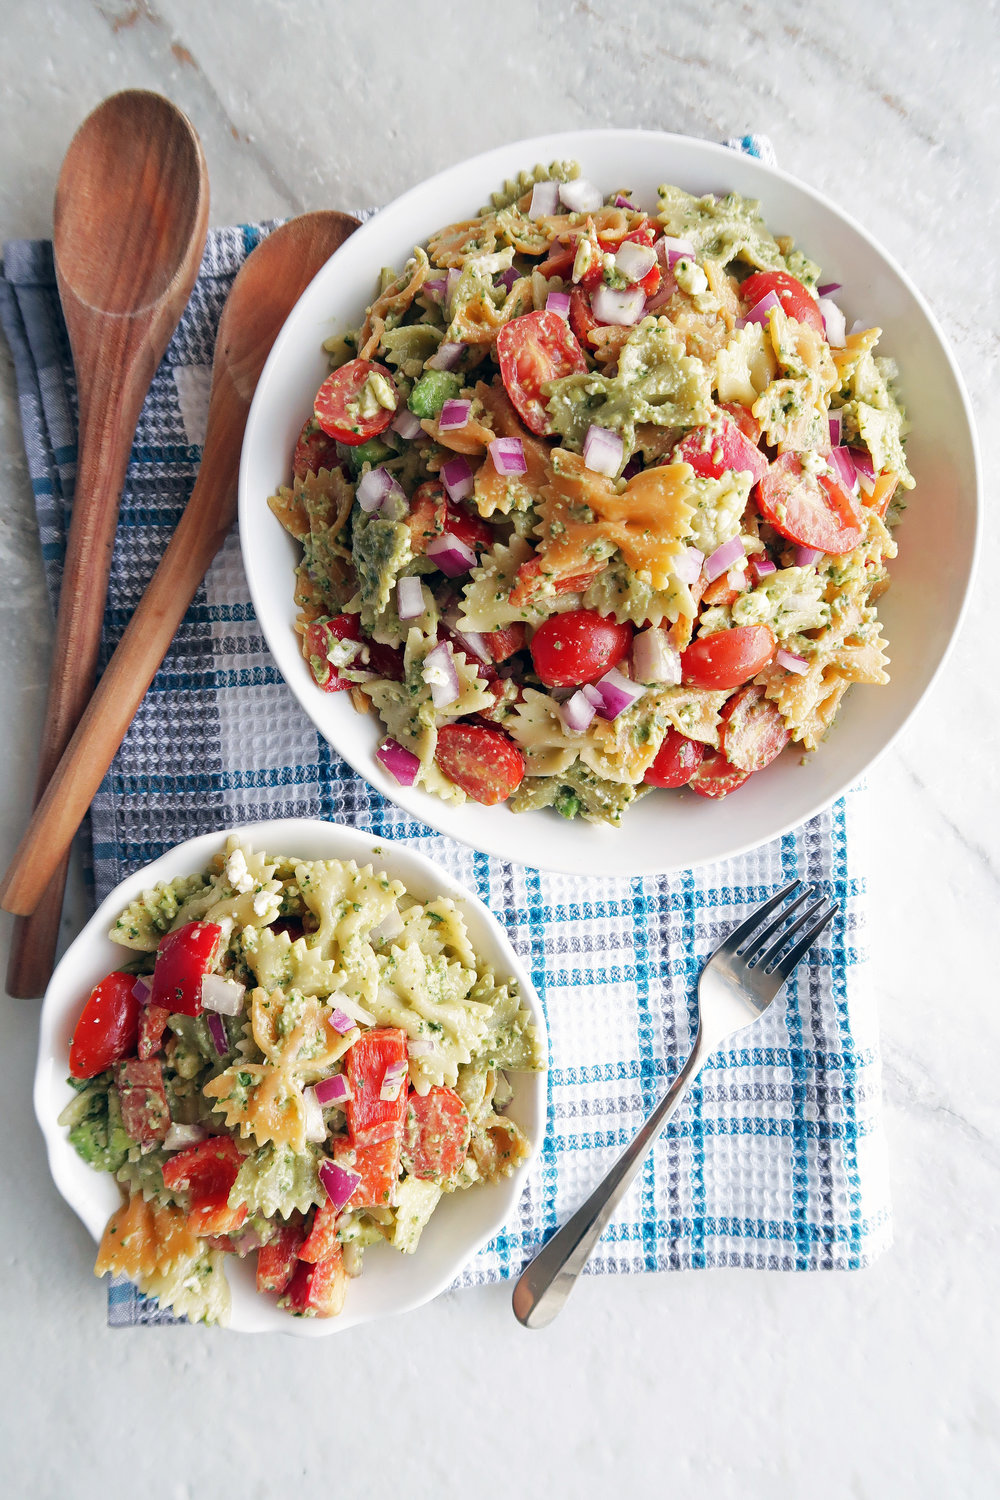 Basil avocado pesto vegetable pasta salad in a large bowl and a small bowl.